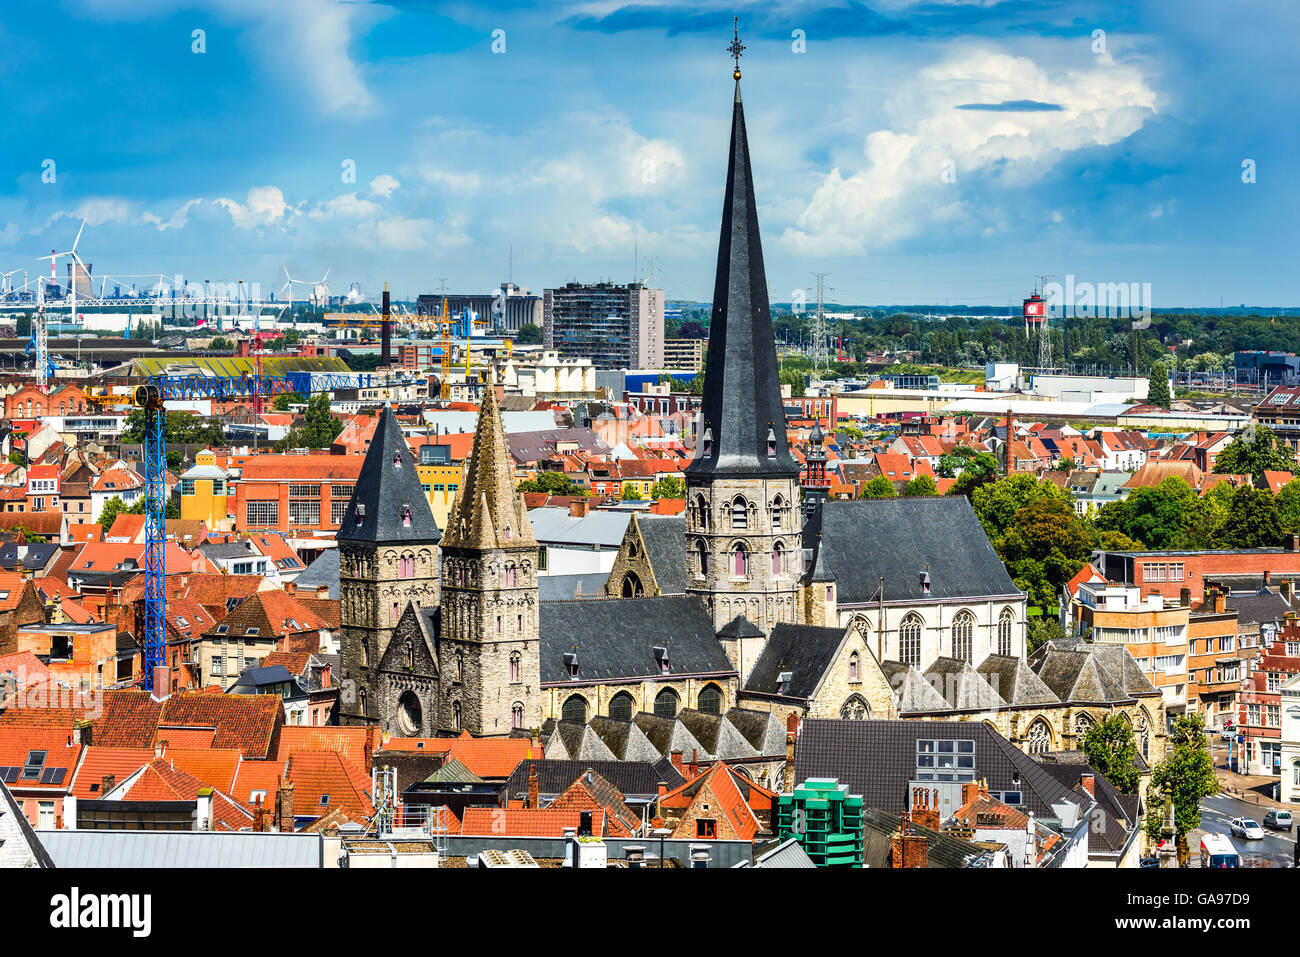 Gent, Belgium. Skyline of Ghent (Gand) in West Flanders, seen from Belfort tower with St. Jacob Church. - Stock Image